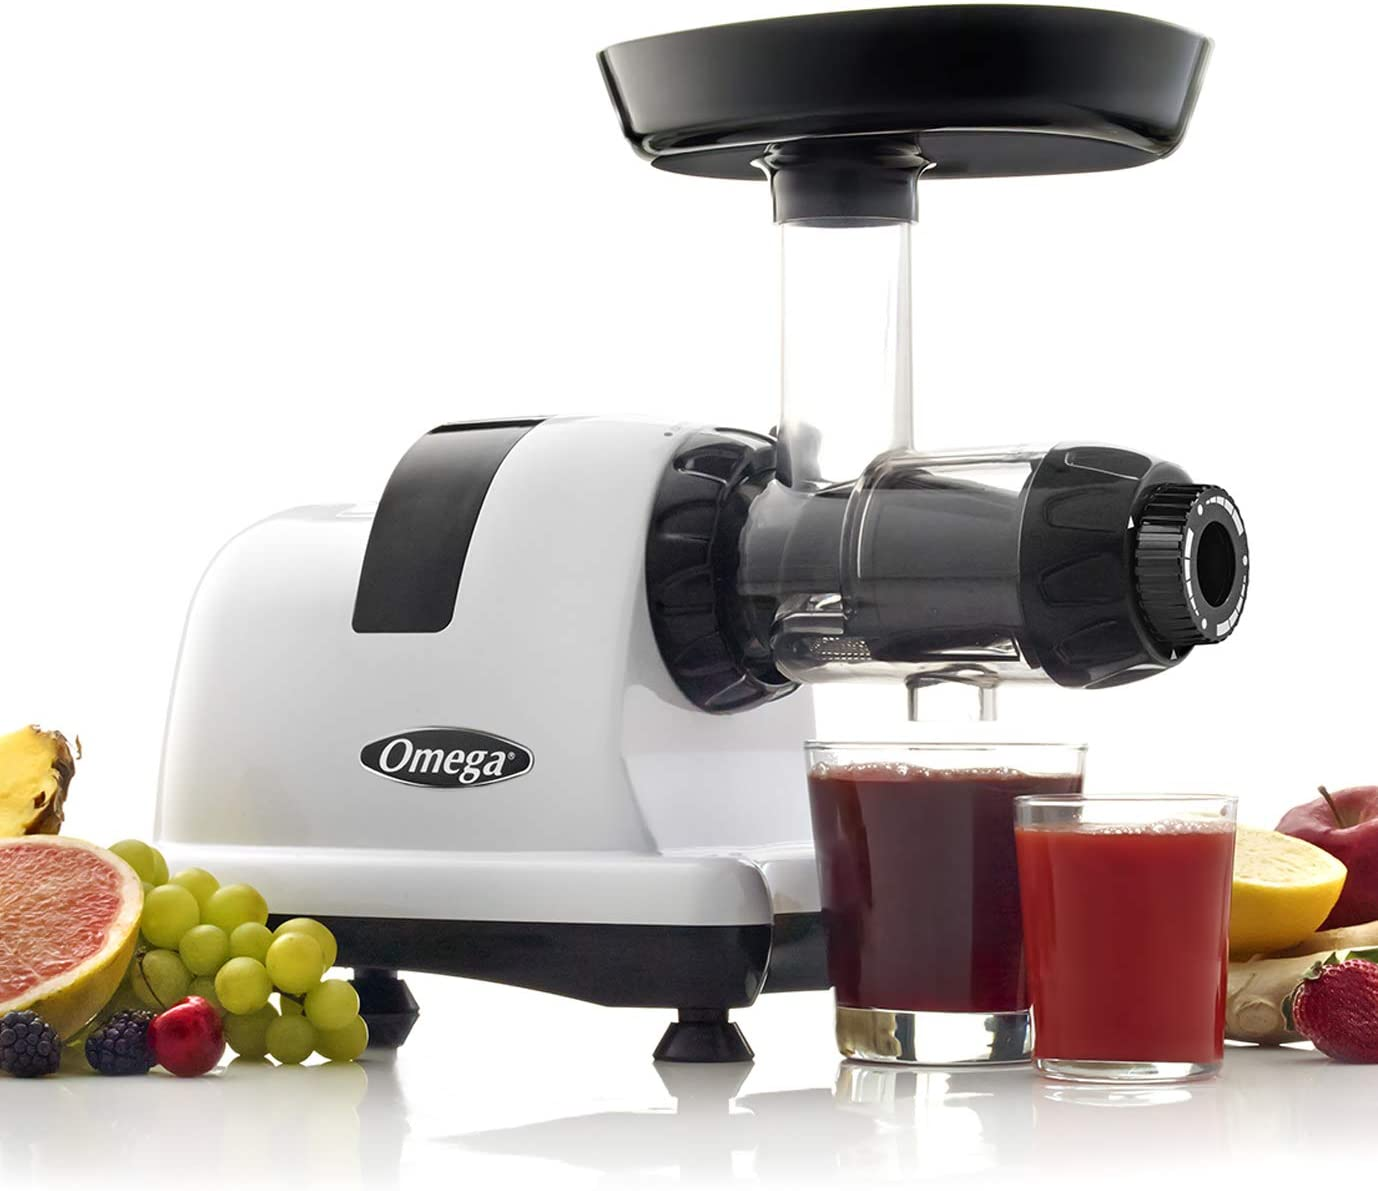 61%2Bgo0KhvEL. AC SL1378 Best Juicers for Tomatoes 2021 - Reviews & Buying Guide